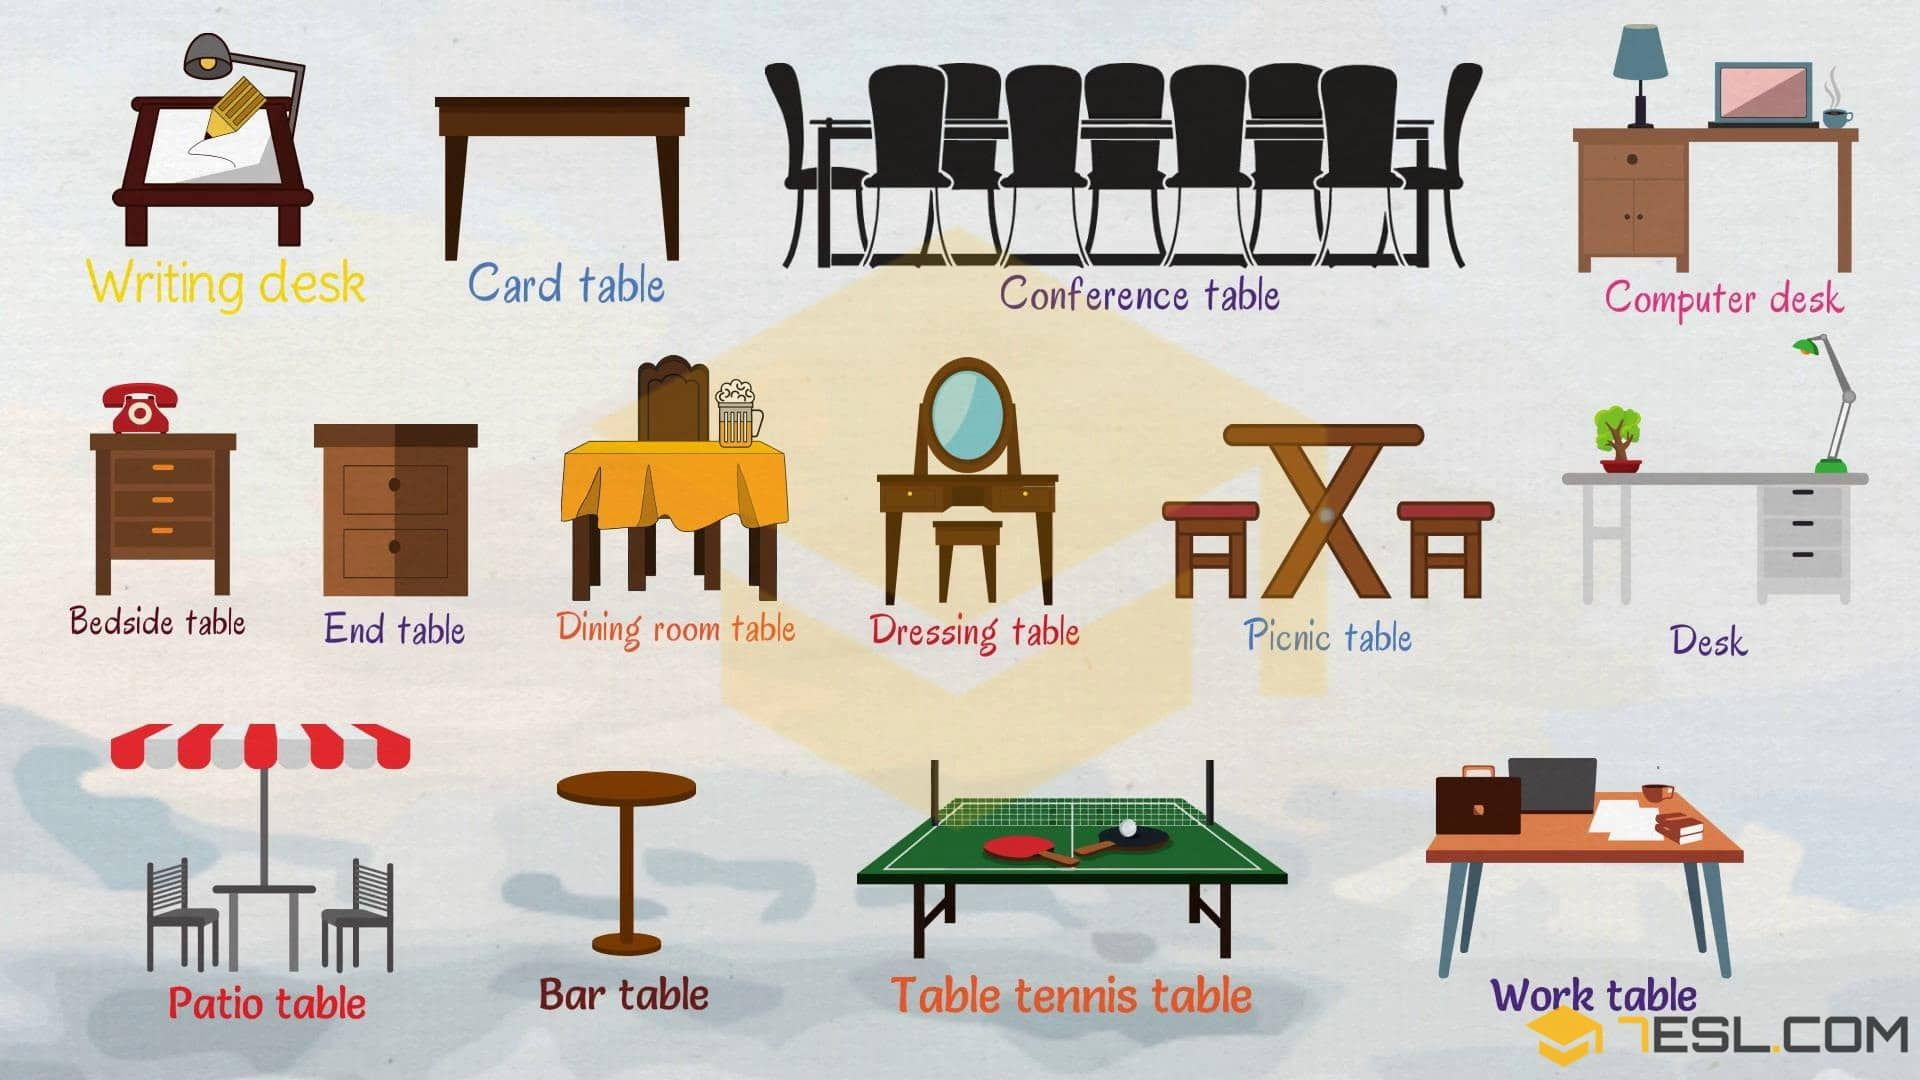 Types Of Tables List Of Tables With Pictures In English 7 E S L Living Room Furniture Types Living Room Objects English Vocabulary